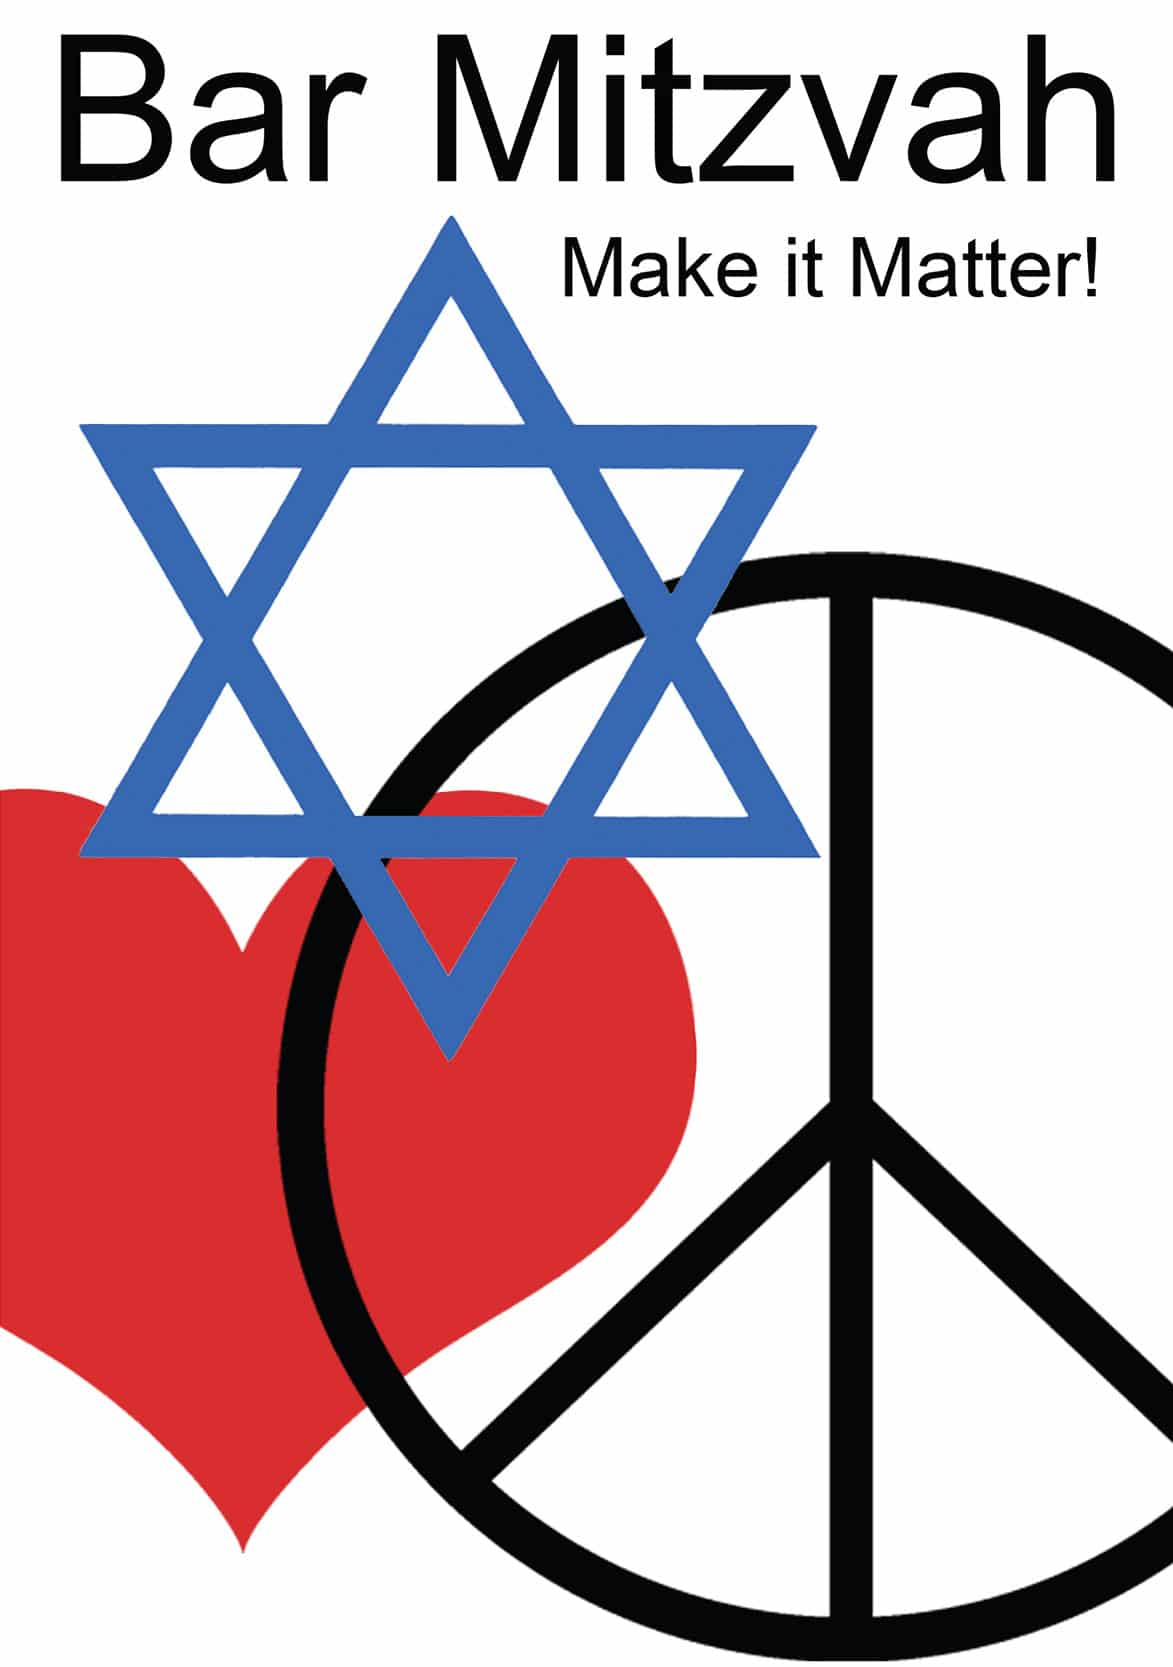 BR618 Peace Bar Mitzvah Greeting Card by Mickie Caspi